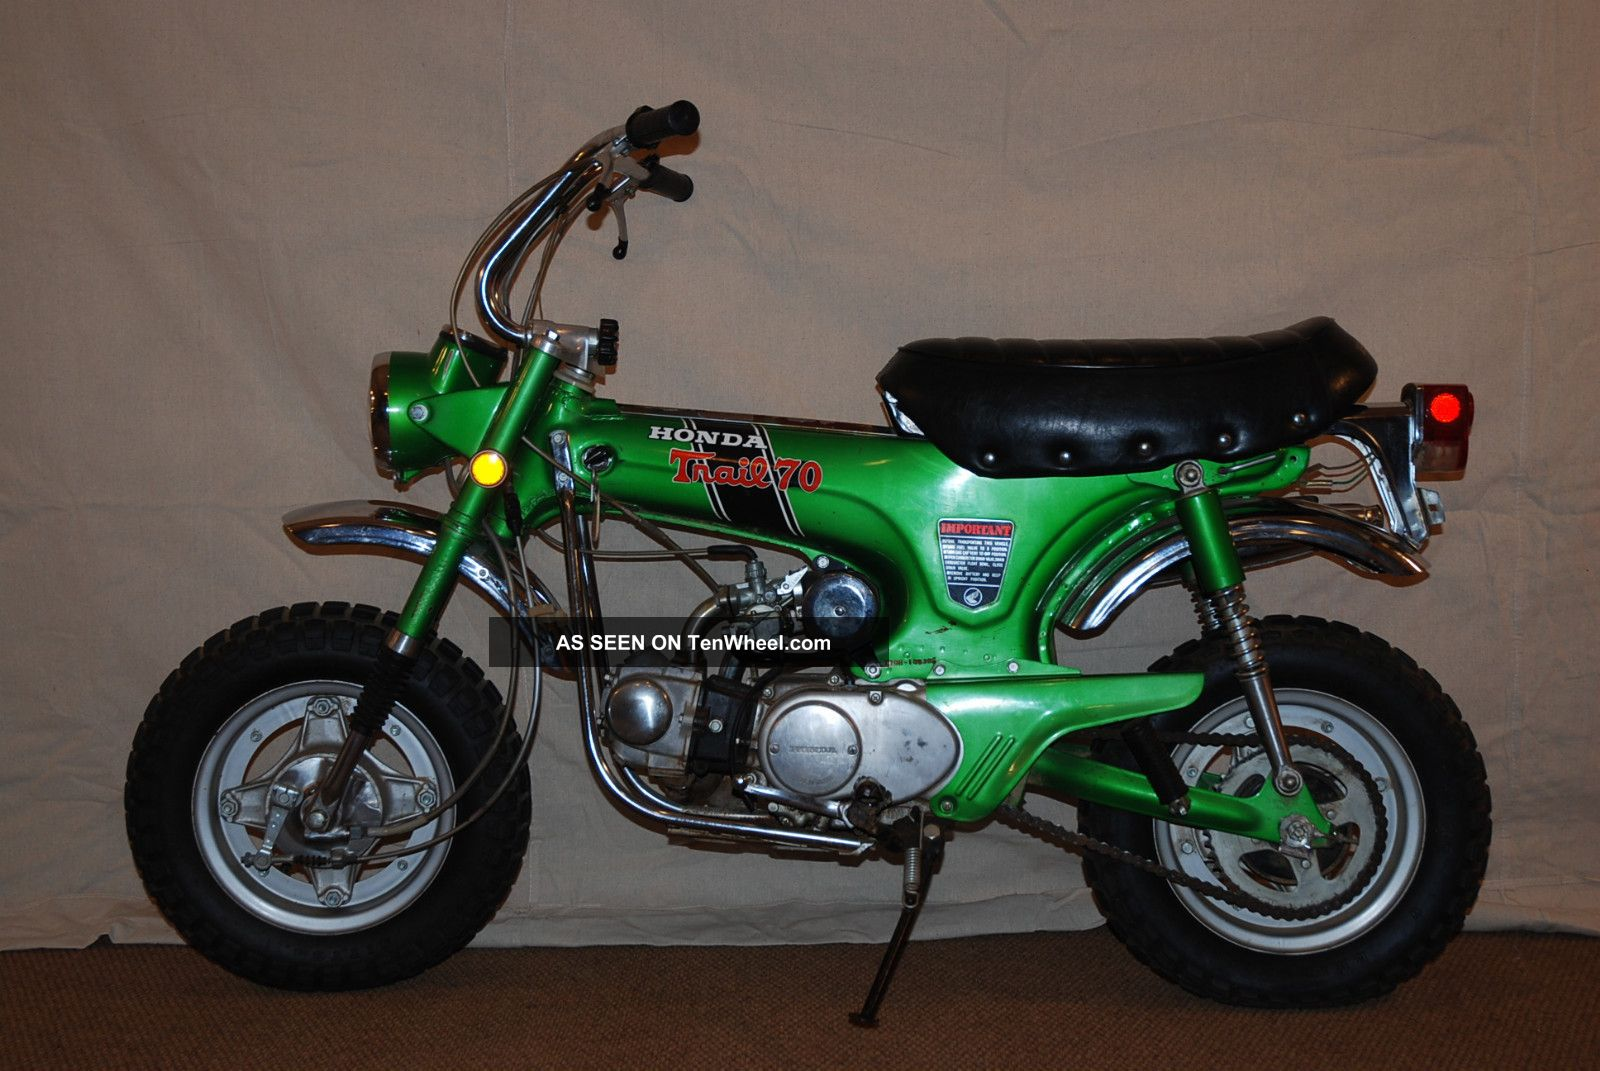 1970 Honda Ct70h - Green - 4 Speed - Unrestored - Private Collection Other photo